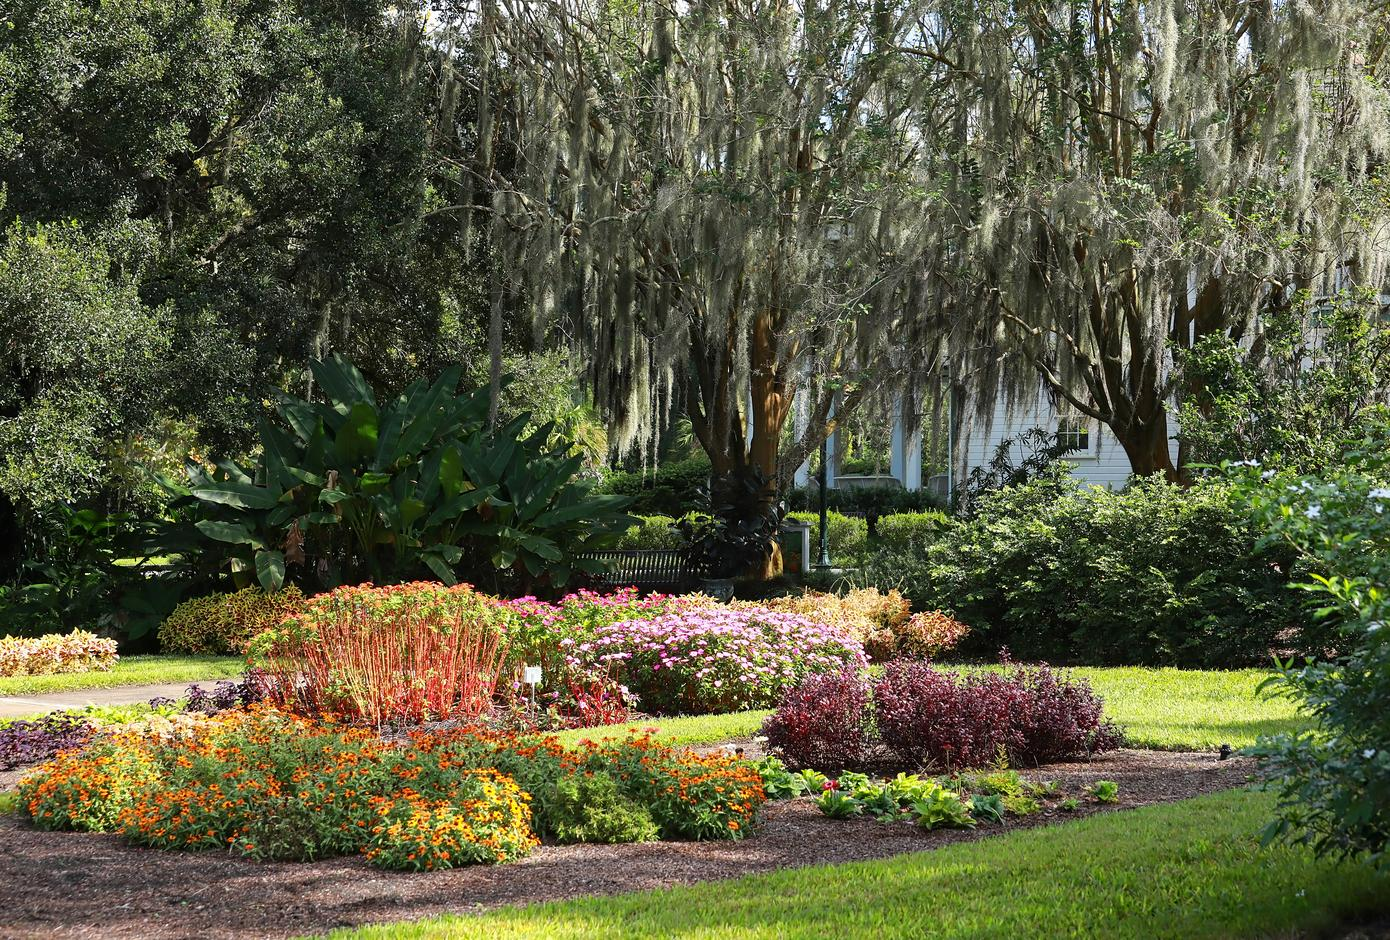 The Harry P. Leu Gardens, in Orlando, Florida.